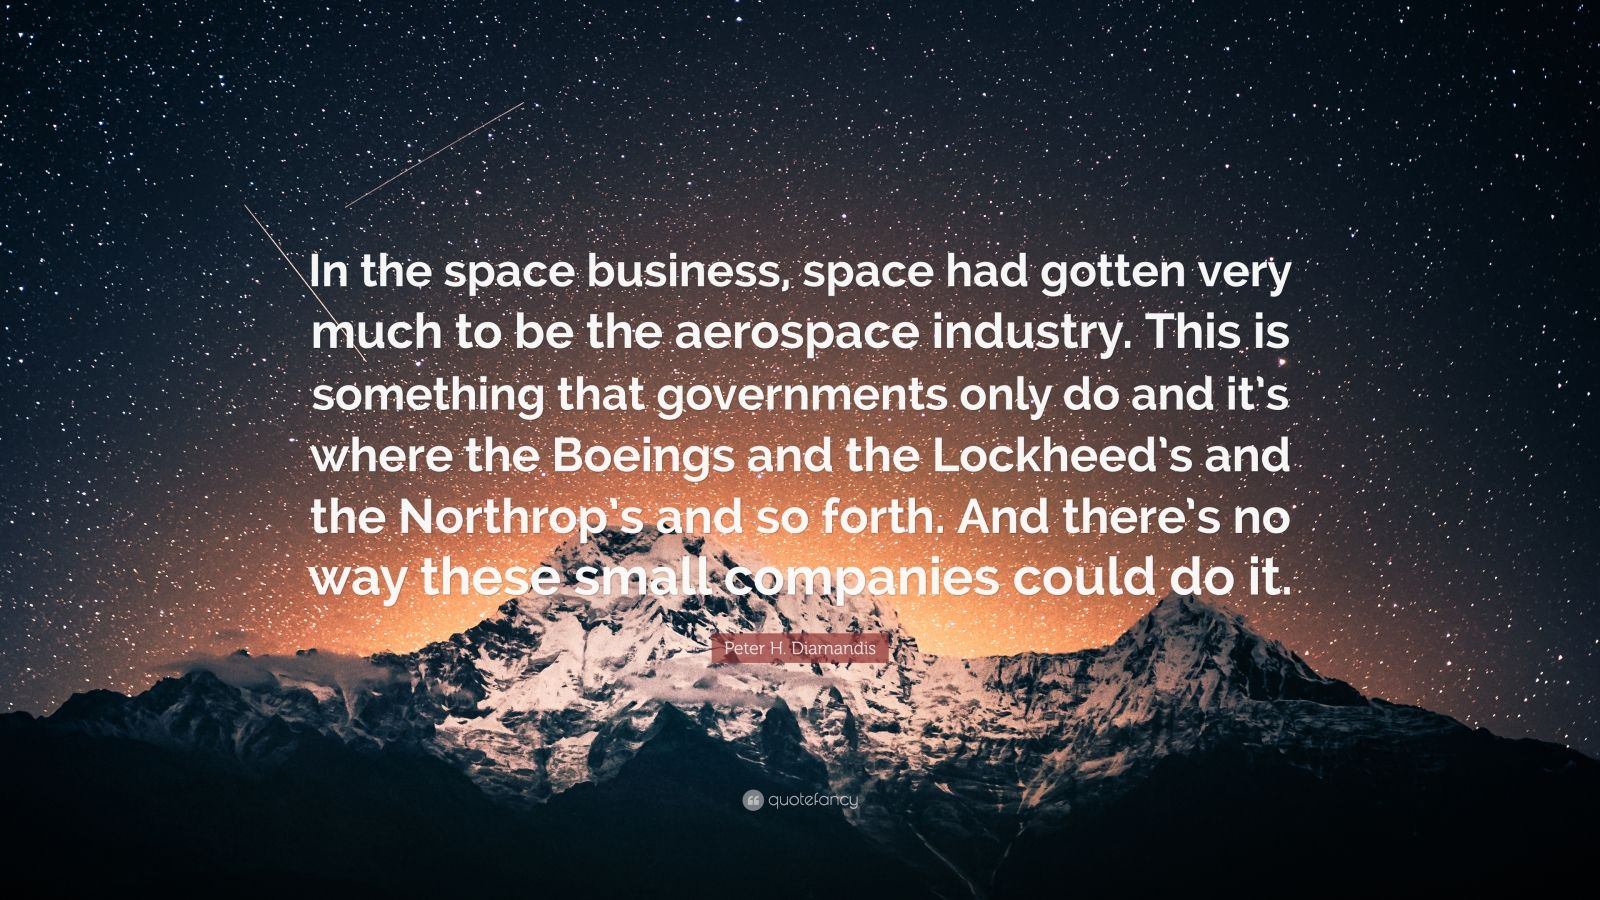 """Peter H. Diamandis Quote: """"In the space business, space had gotten very much to be the aerospace industry. This is something that governments only do and it's where the Boeings and the Lockheed's and the Northrop's and so forth. And there's no way these small companies could do it."""""""